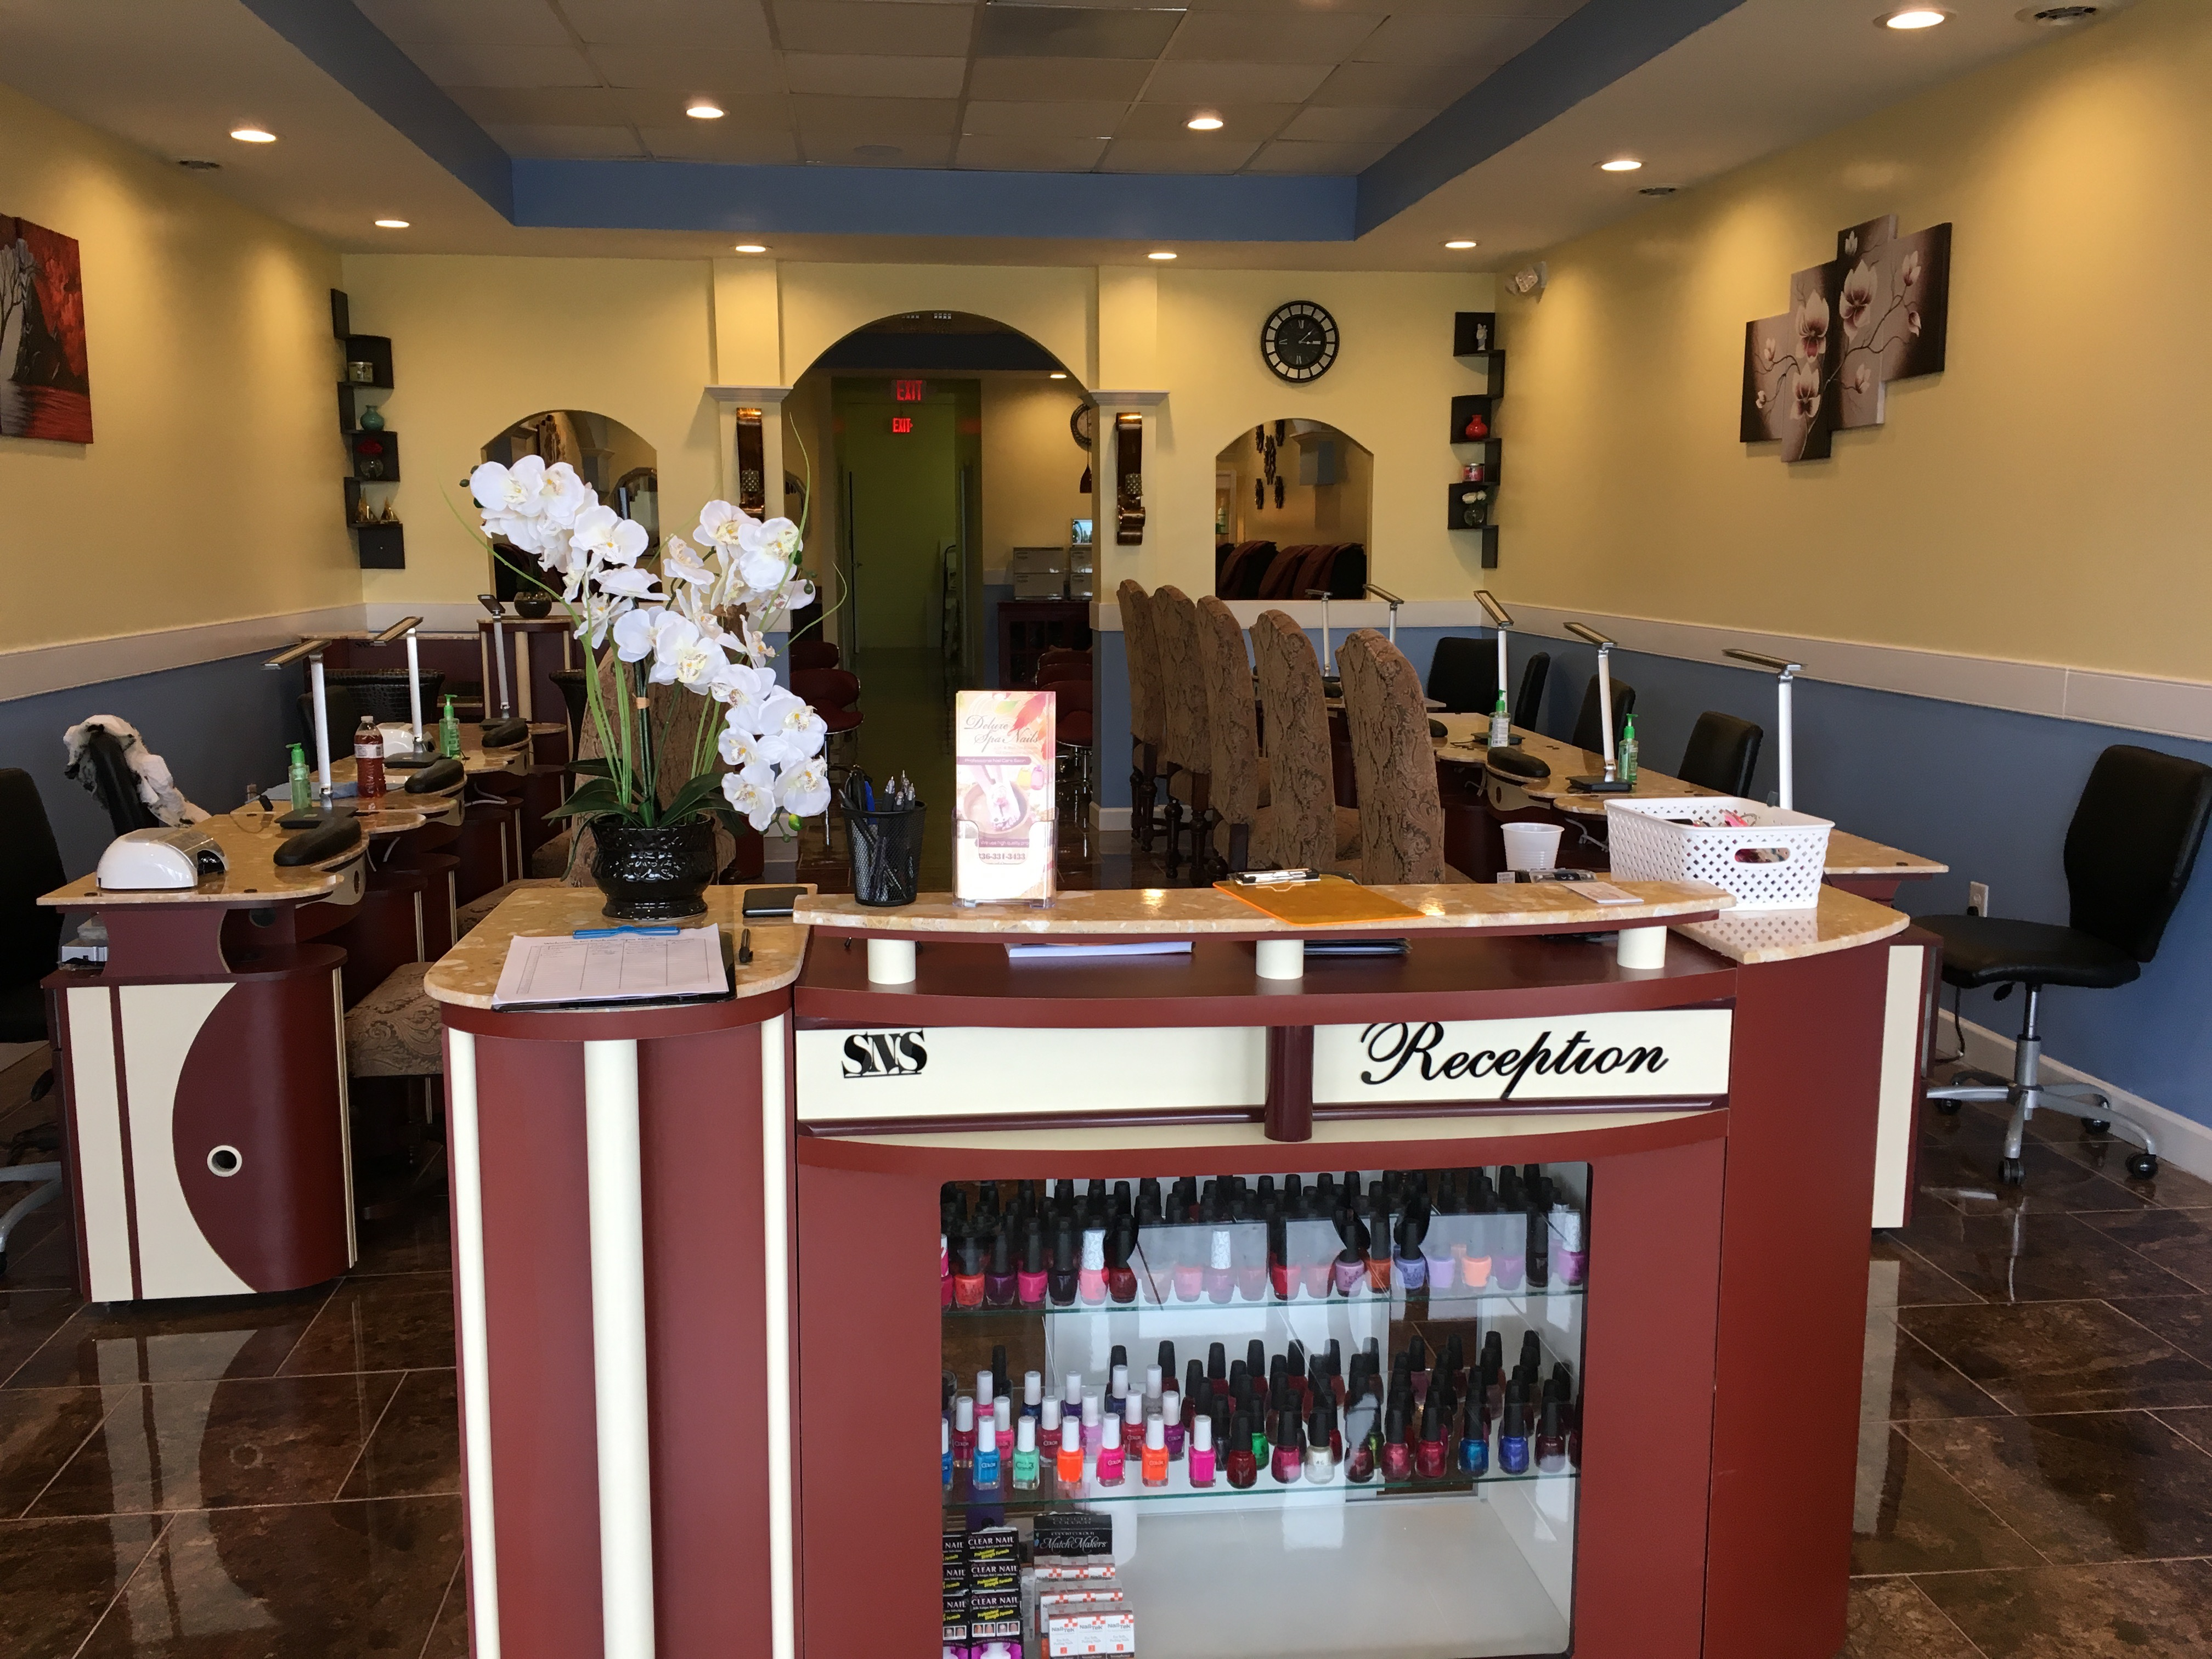 Deluxe Spa Nails 160 Westwood Village Dr, clemmons, NC 27012 - YP.com